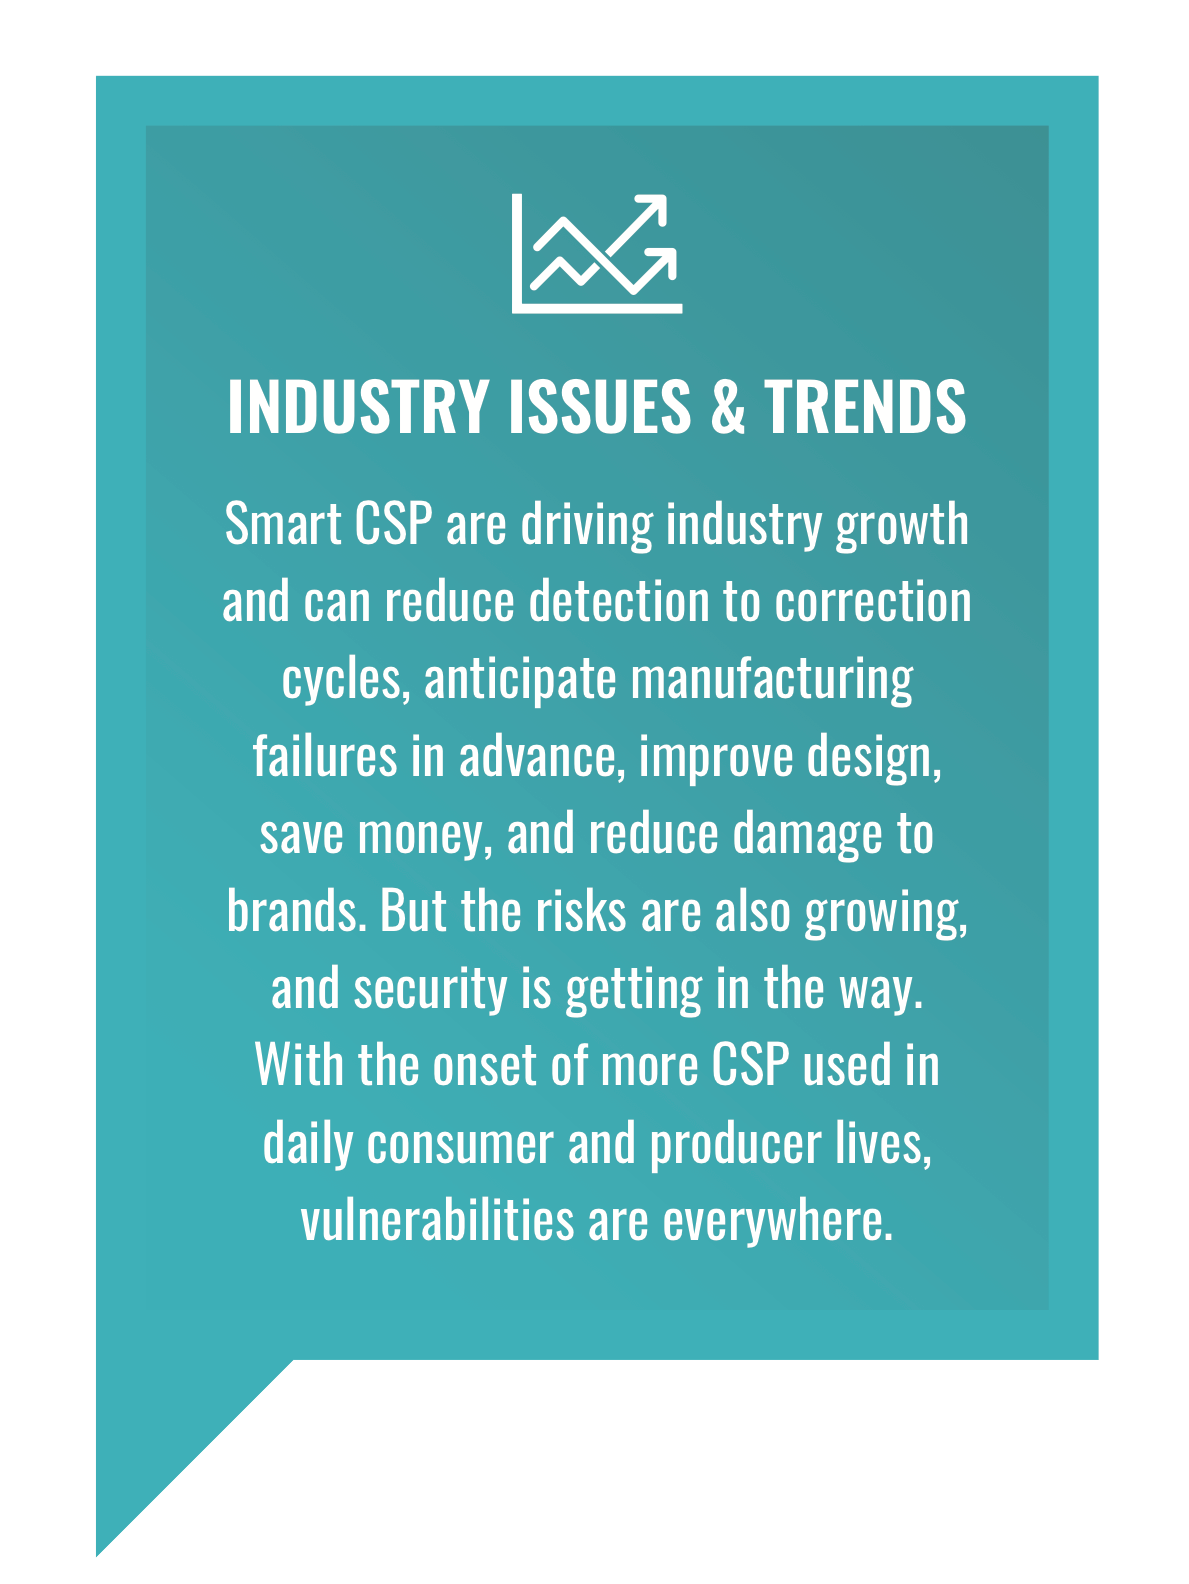 Industry issues and trends.png